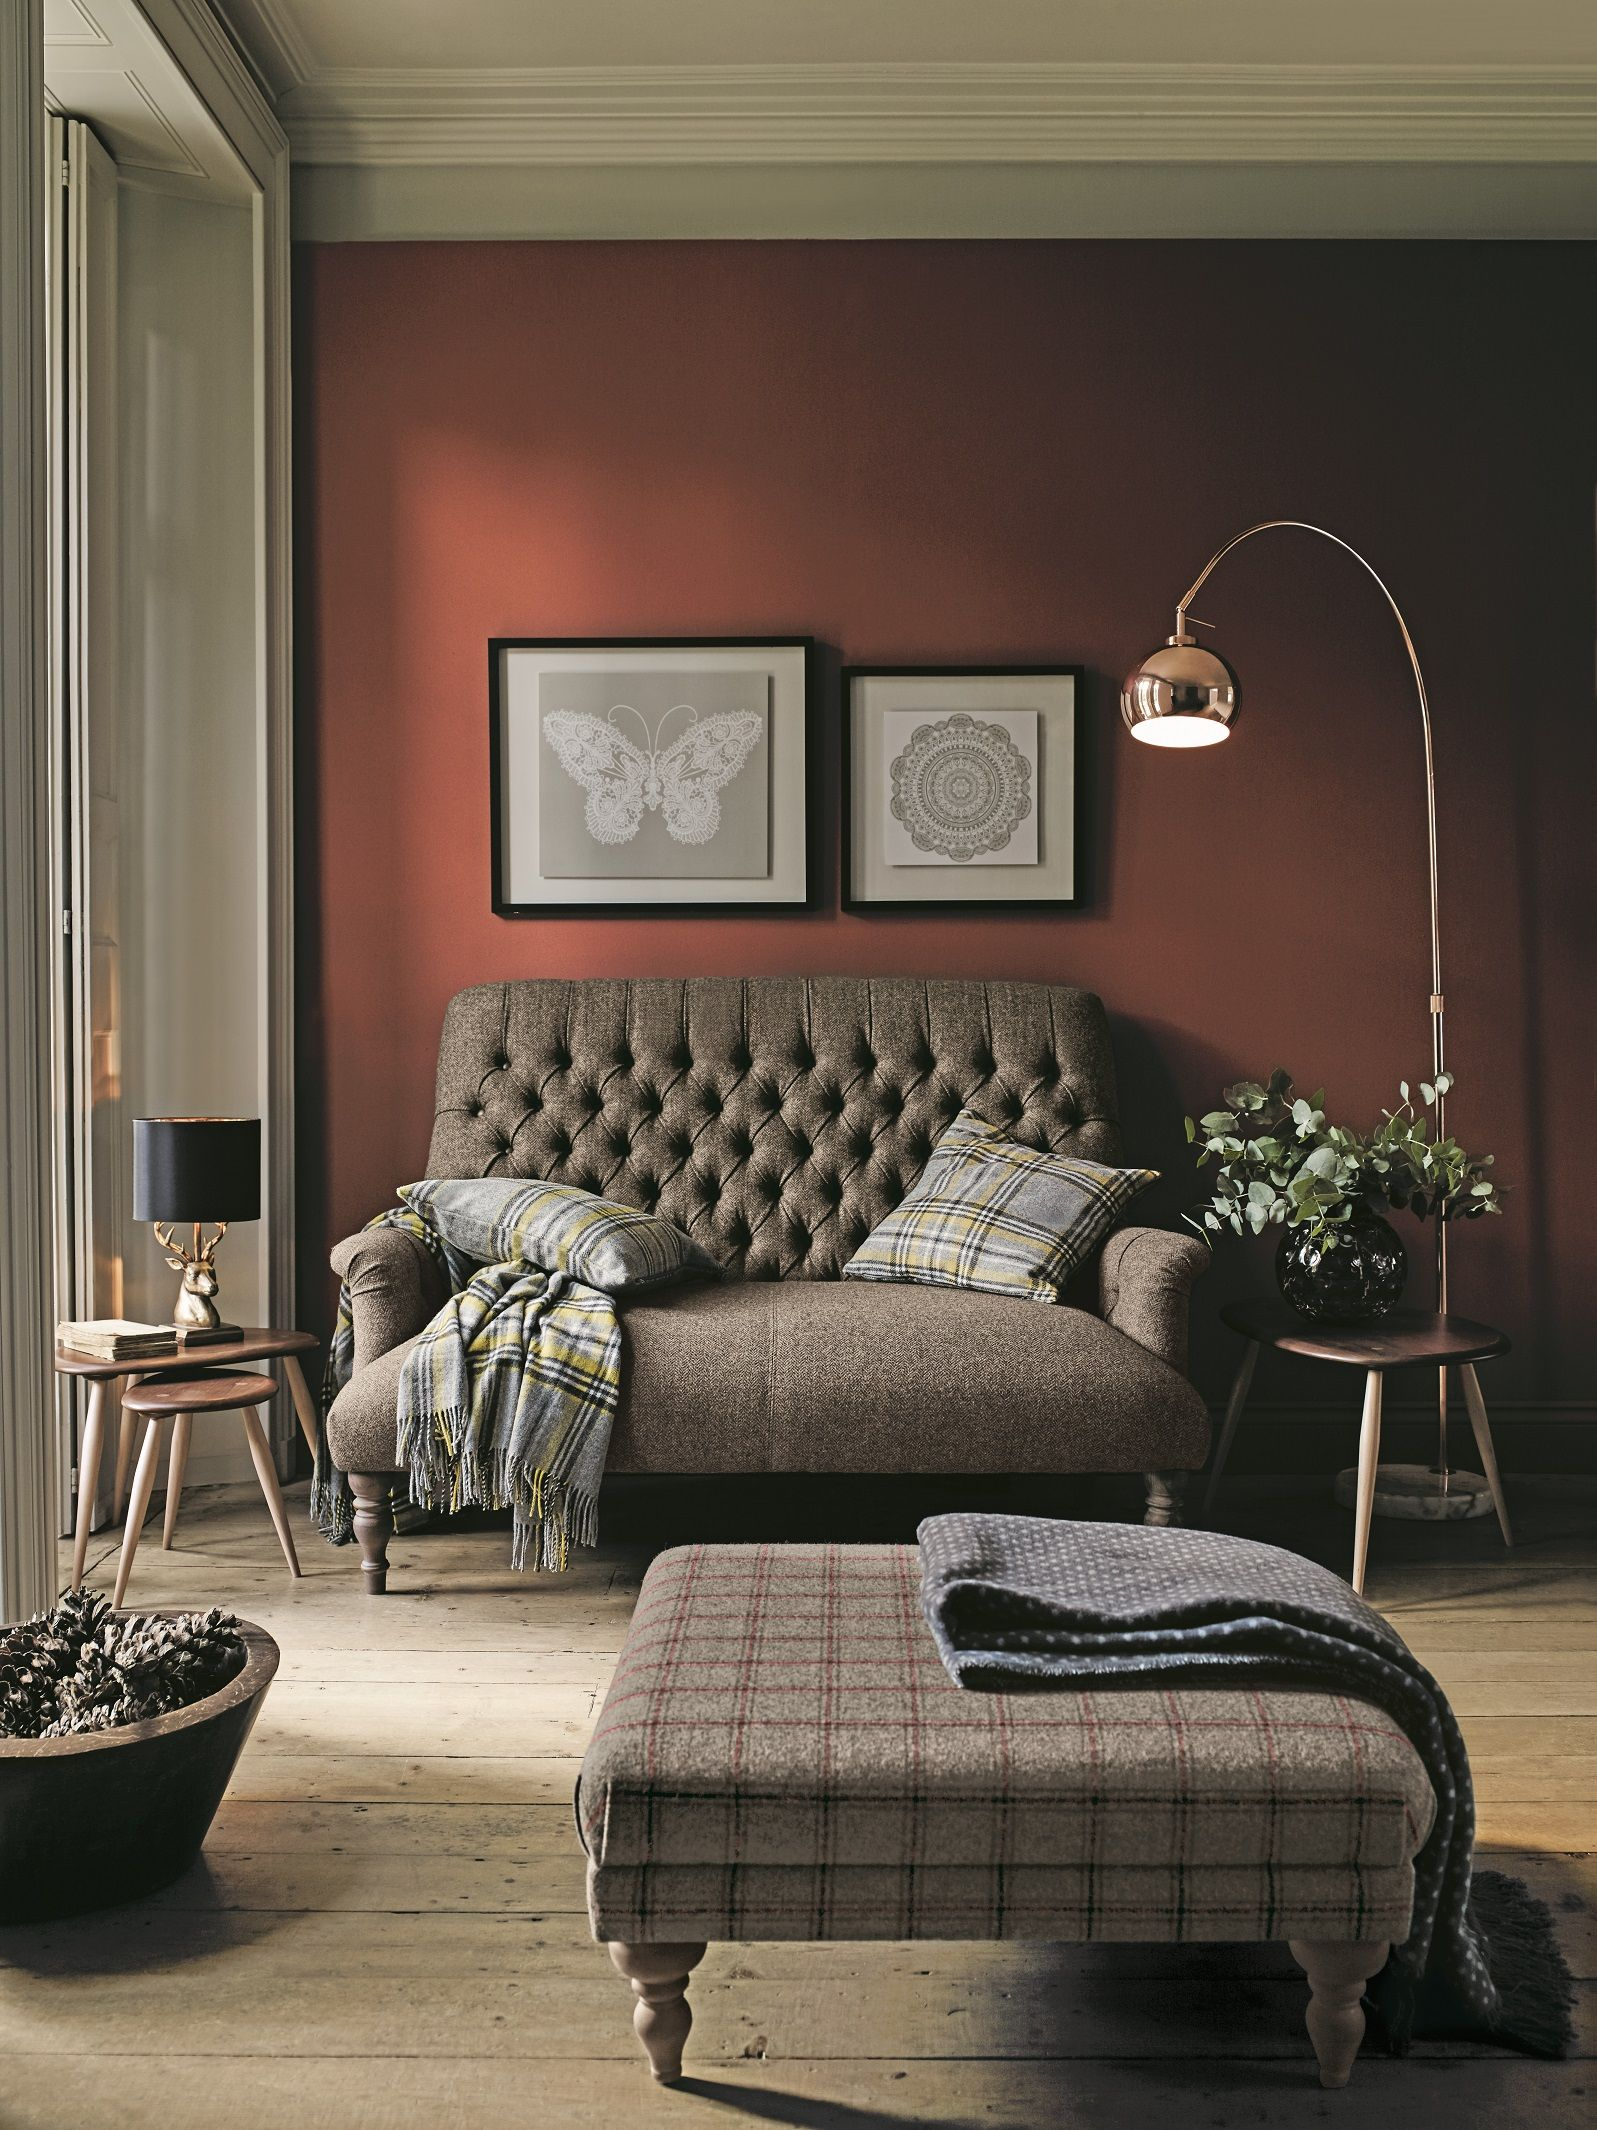 Inspired By British Heritage The Terracotta Colours Give This Living Room An Autumnal Feel Living Room Warm Snug Room Living Room Colors